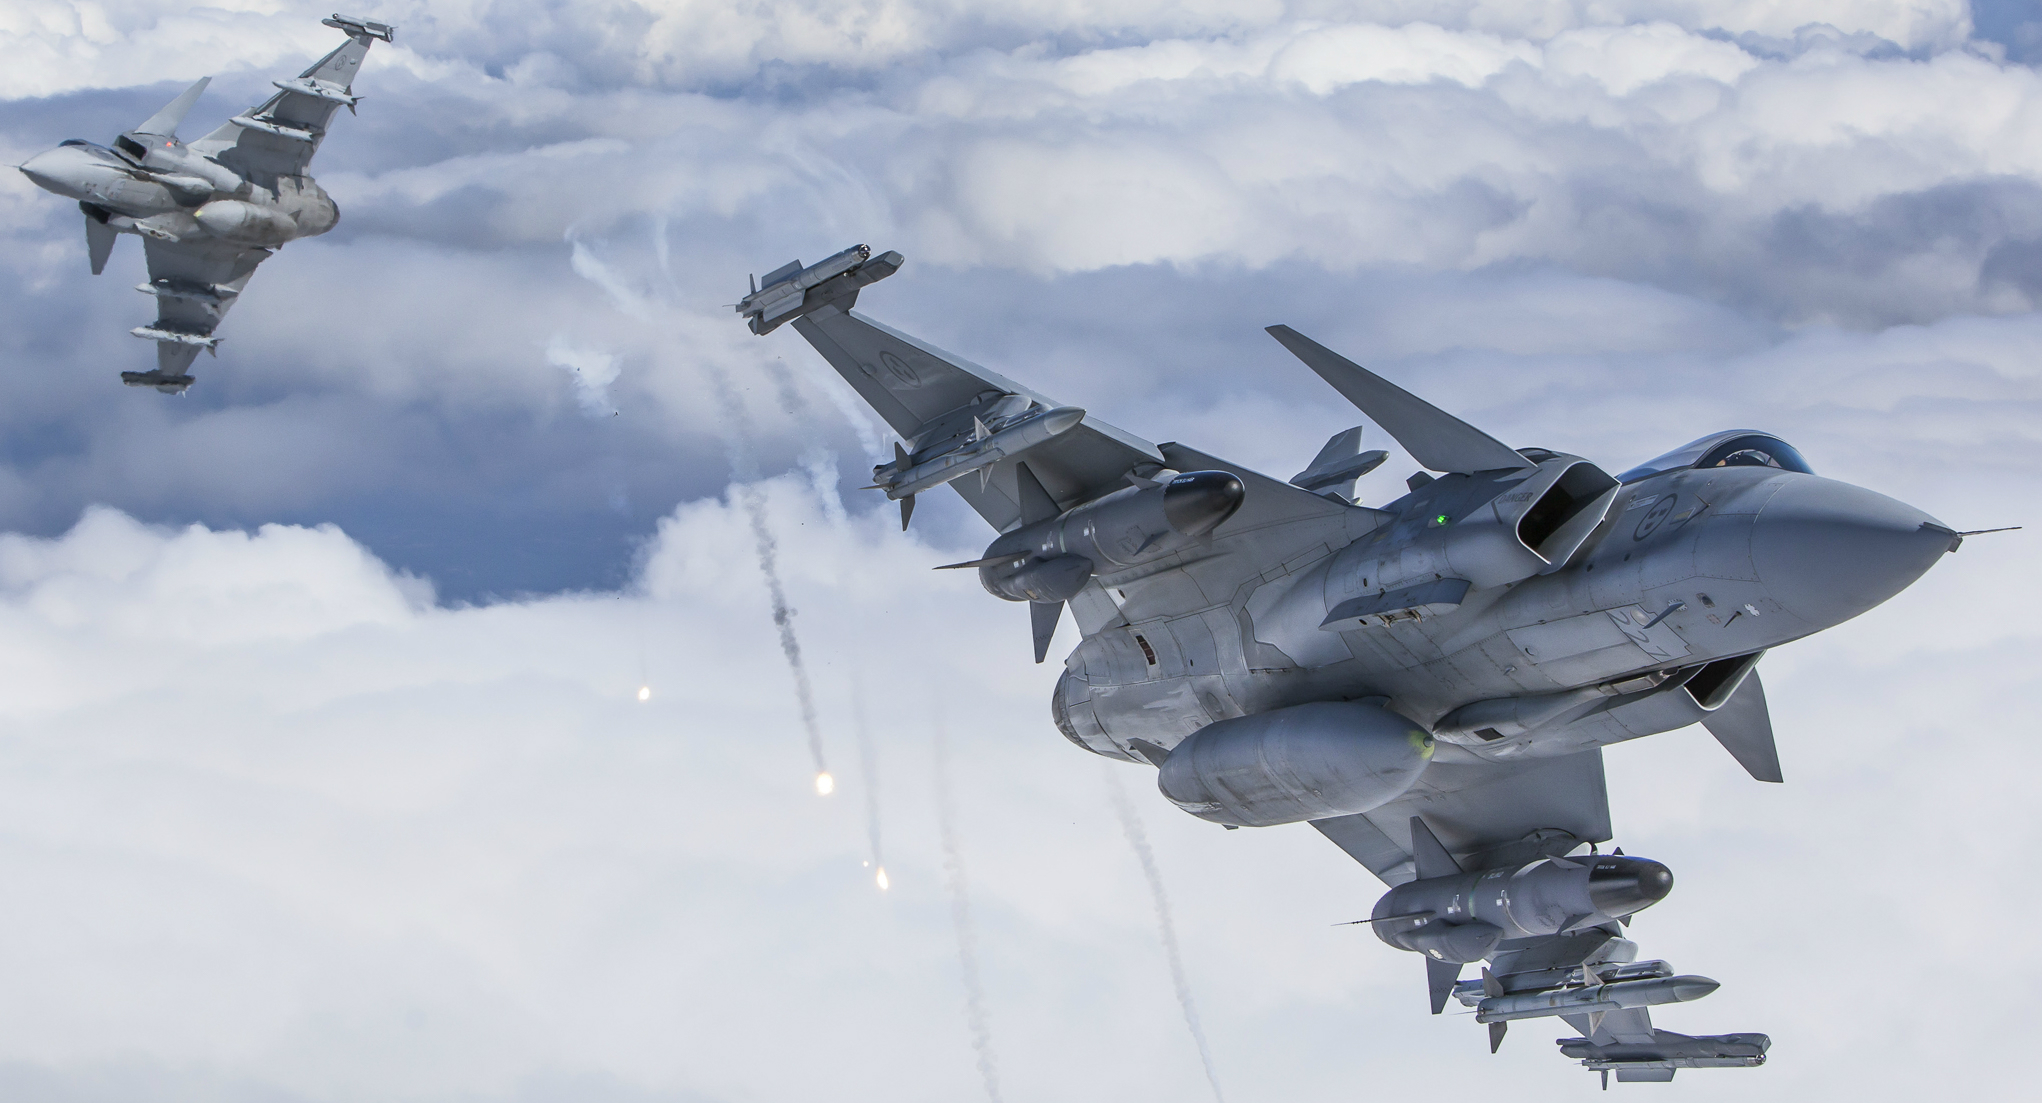 Saab positions Gripen E as Canada's next-generation fighter - Skies Mag